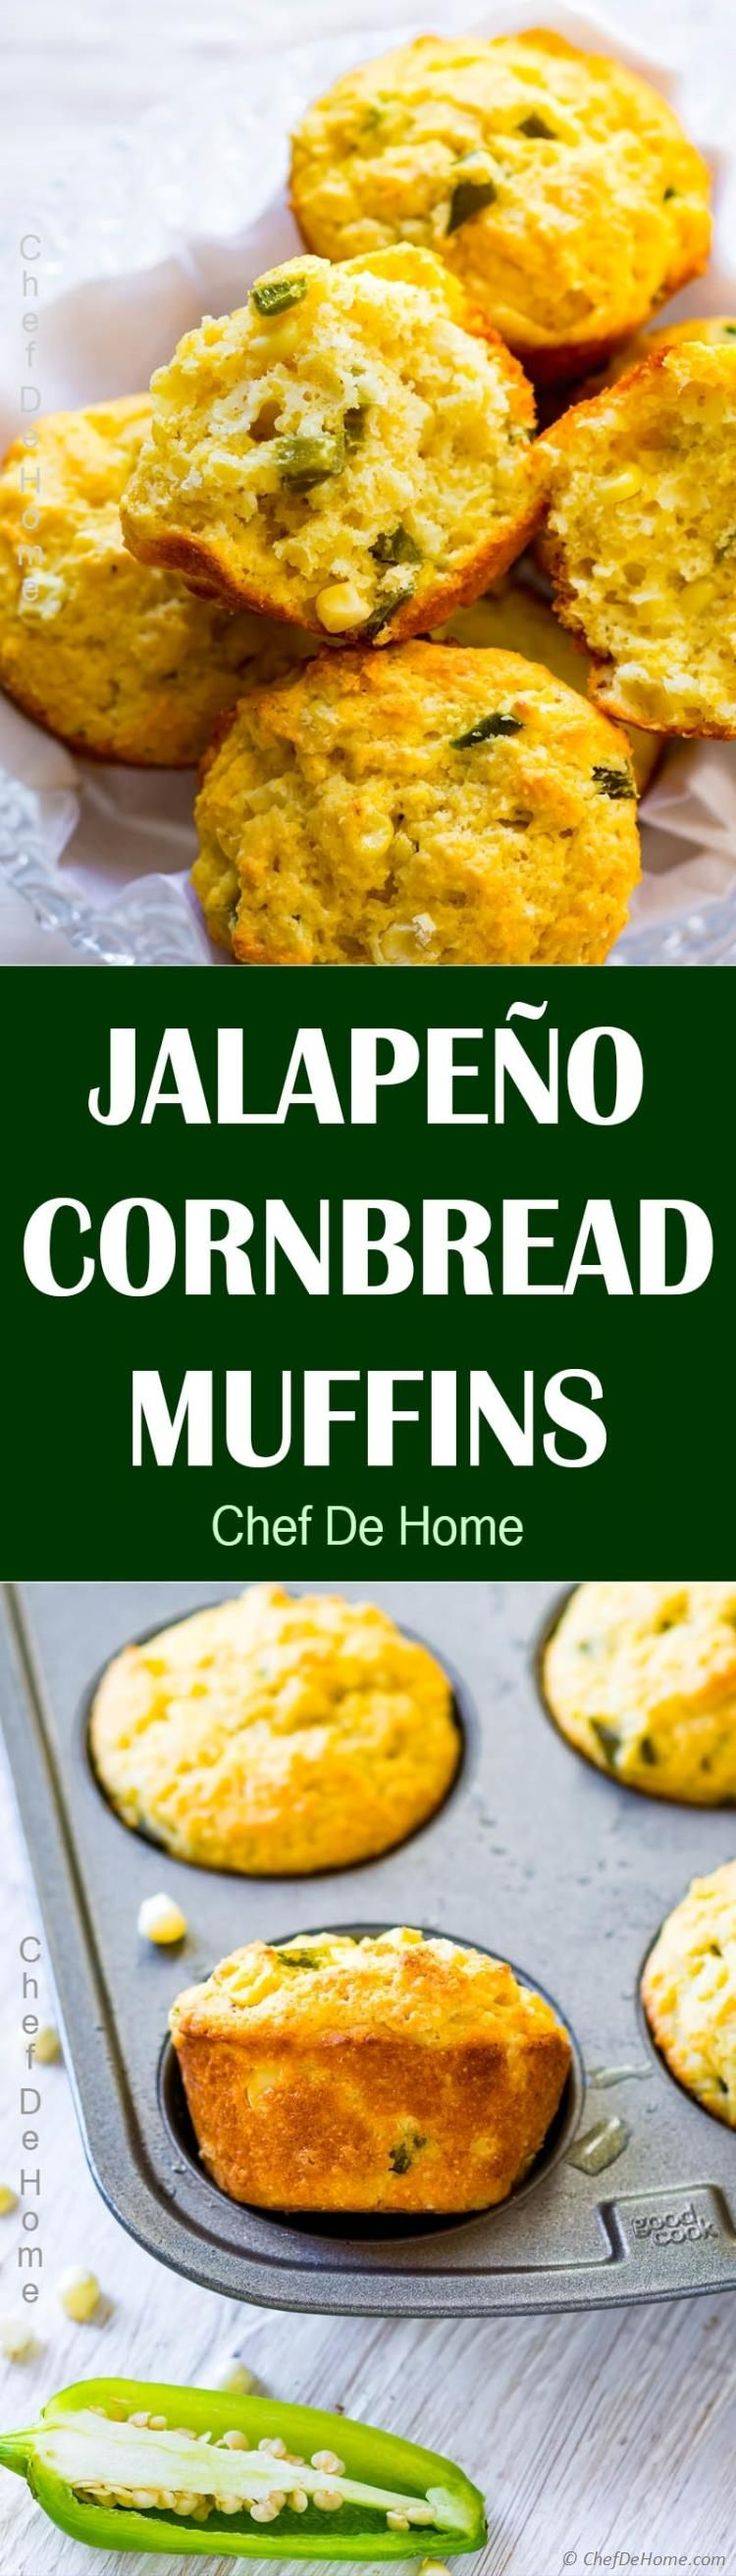 Jalapeno Cornbread Muffins - Moist Buttermilk Cornbread Muffins with corn and chopped jalapenos. Perfect to dunk in warm soup or serve with stew for dinner